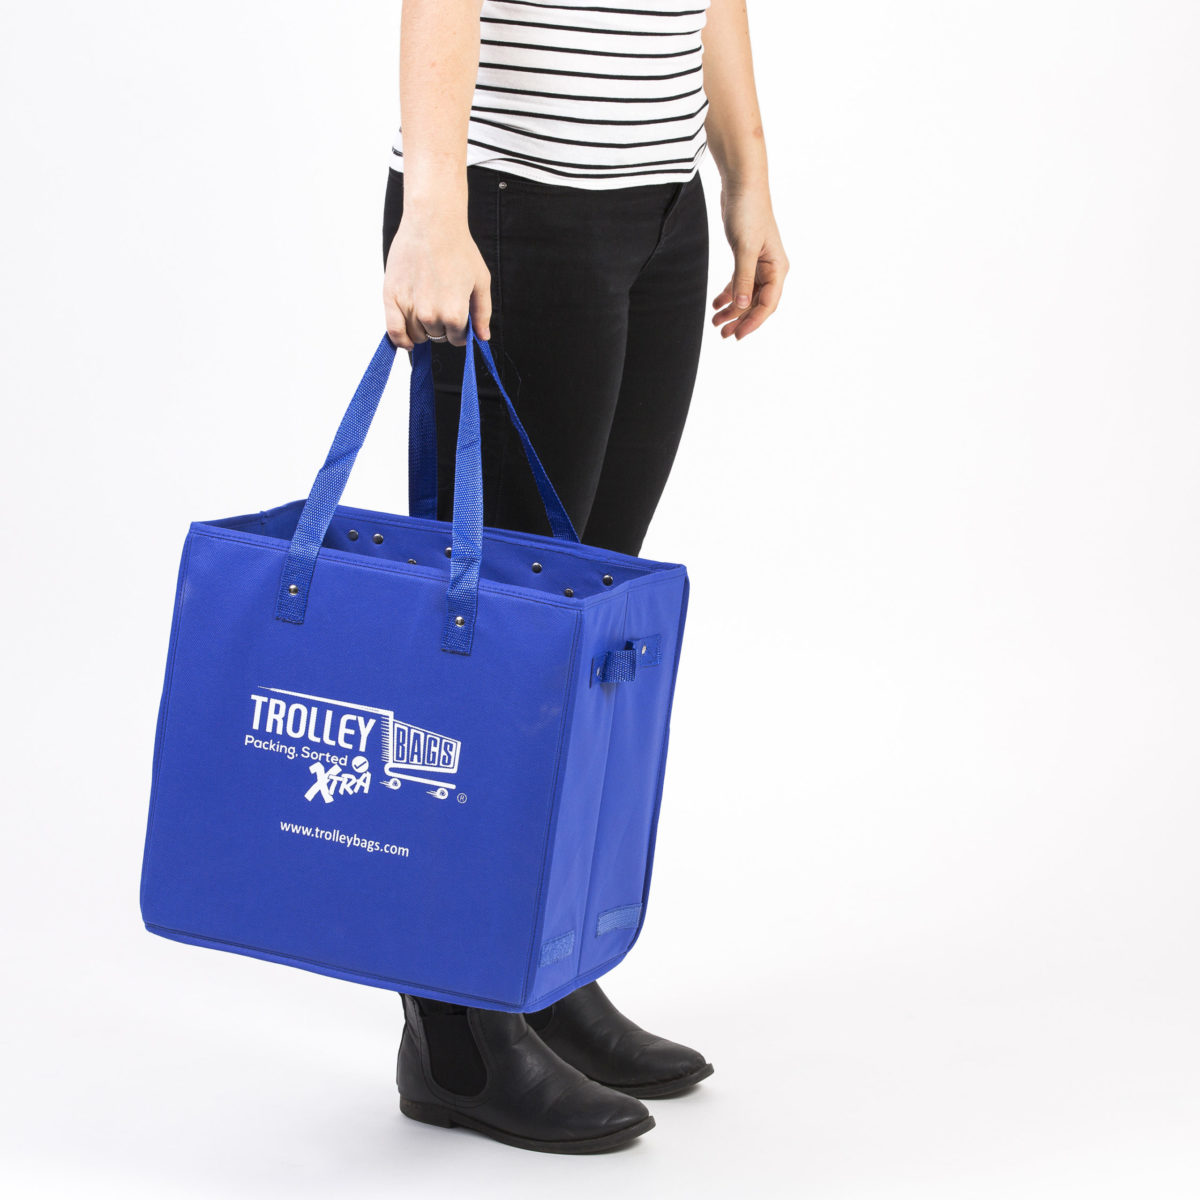 Trolley Bags Xtra is the perfect solution for when you need to do a small shop.